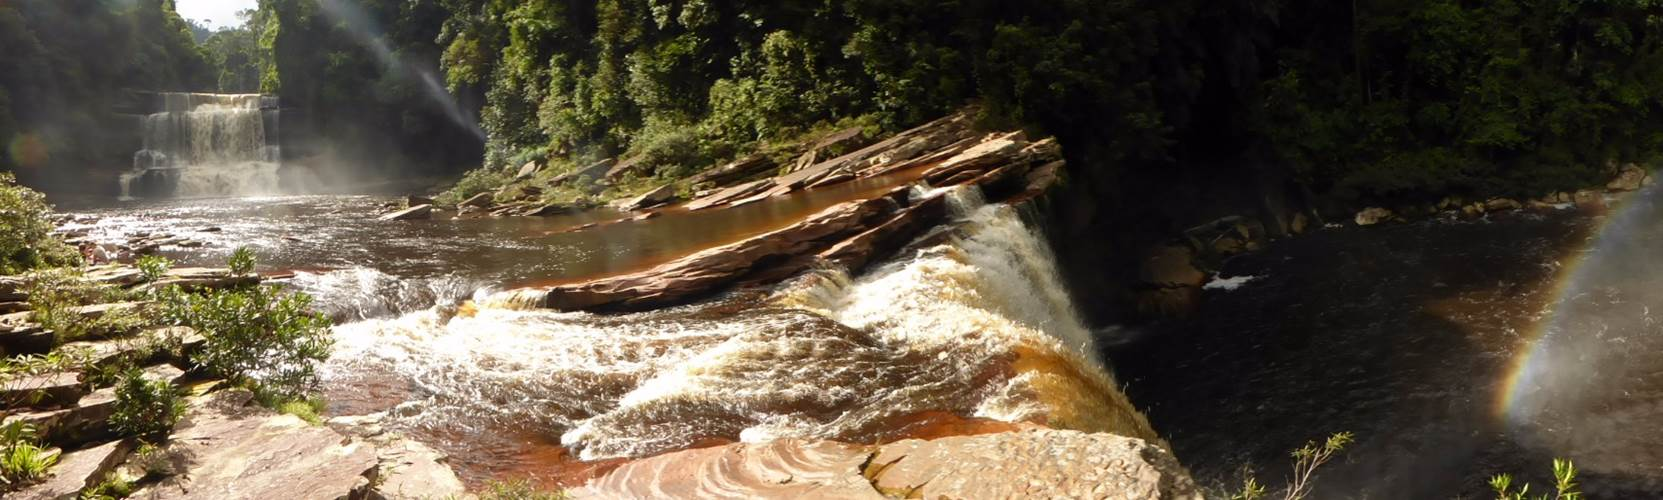 Adventure Alternative Borneo Sabah Maliau Basin Waterfall